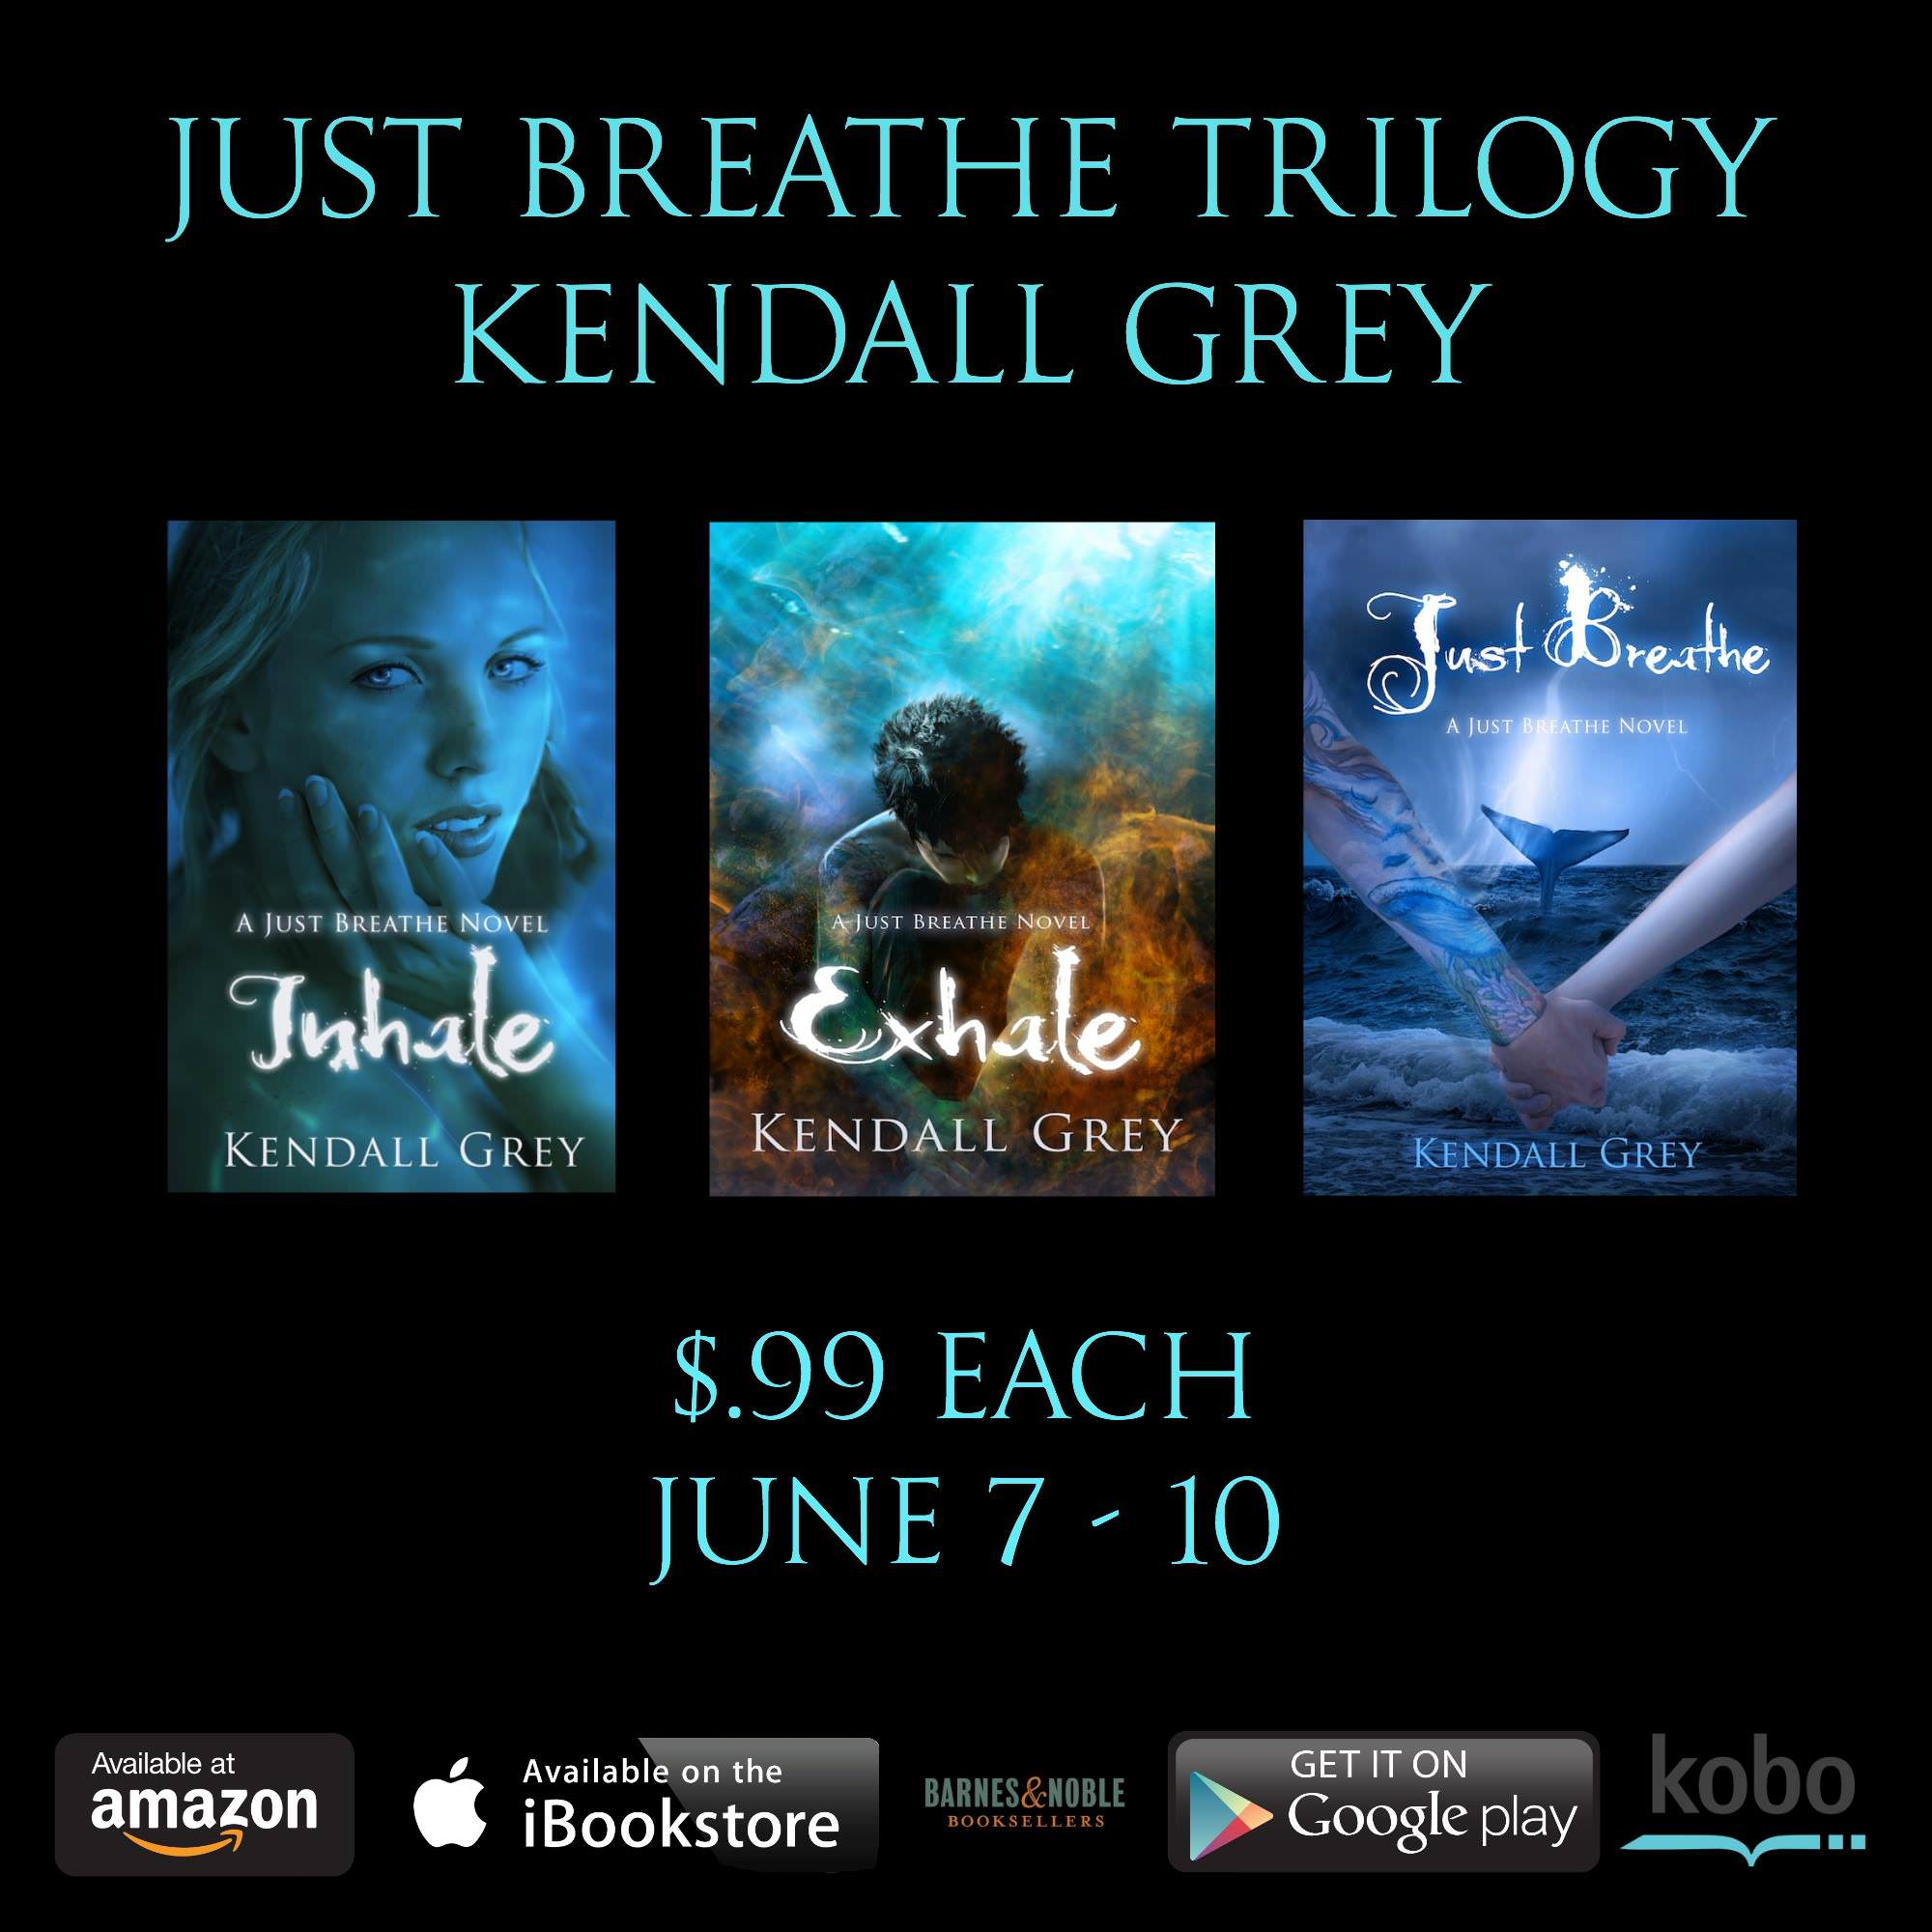 Kendall Grey's Just Breathe Series is on Sale!